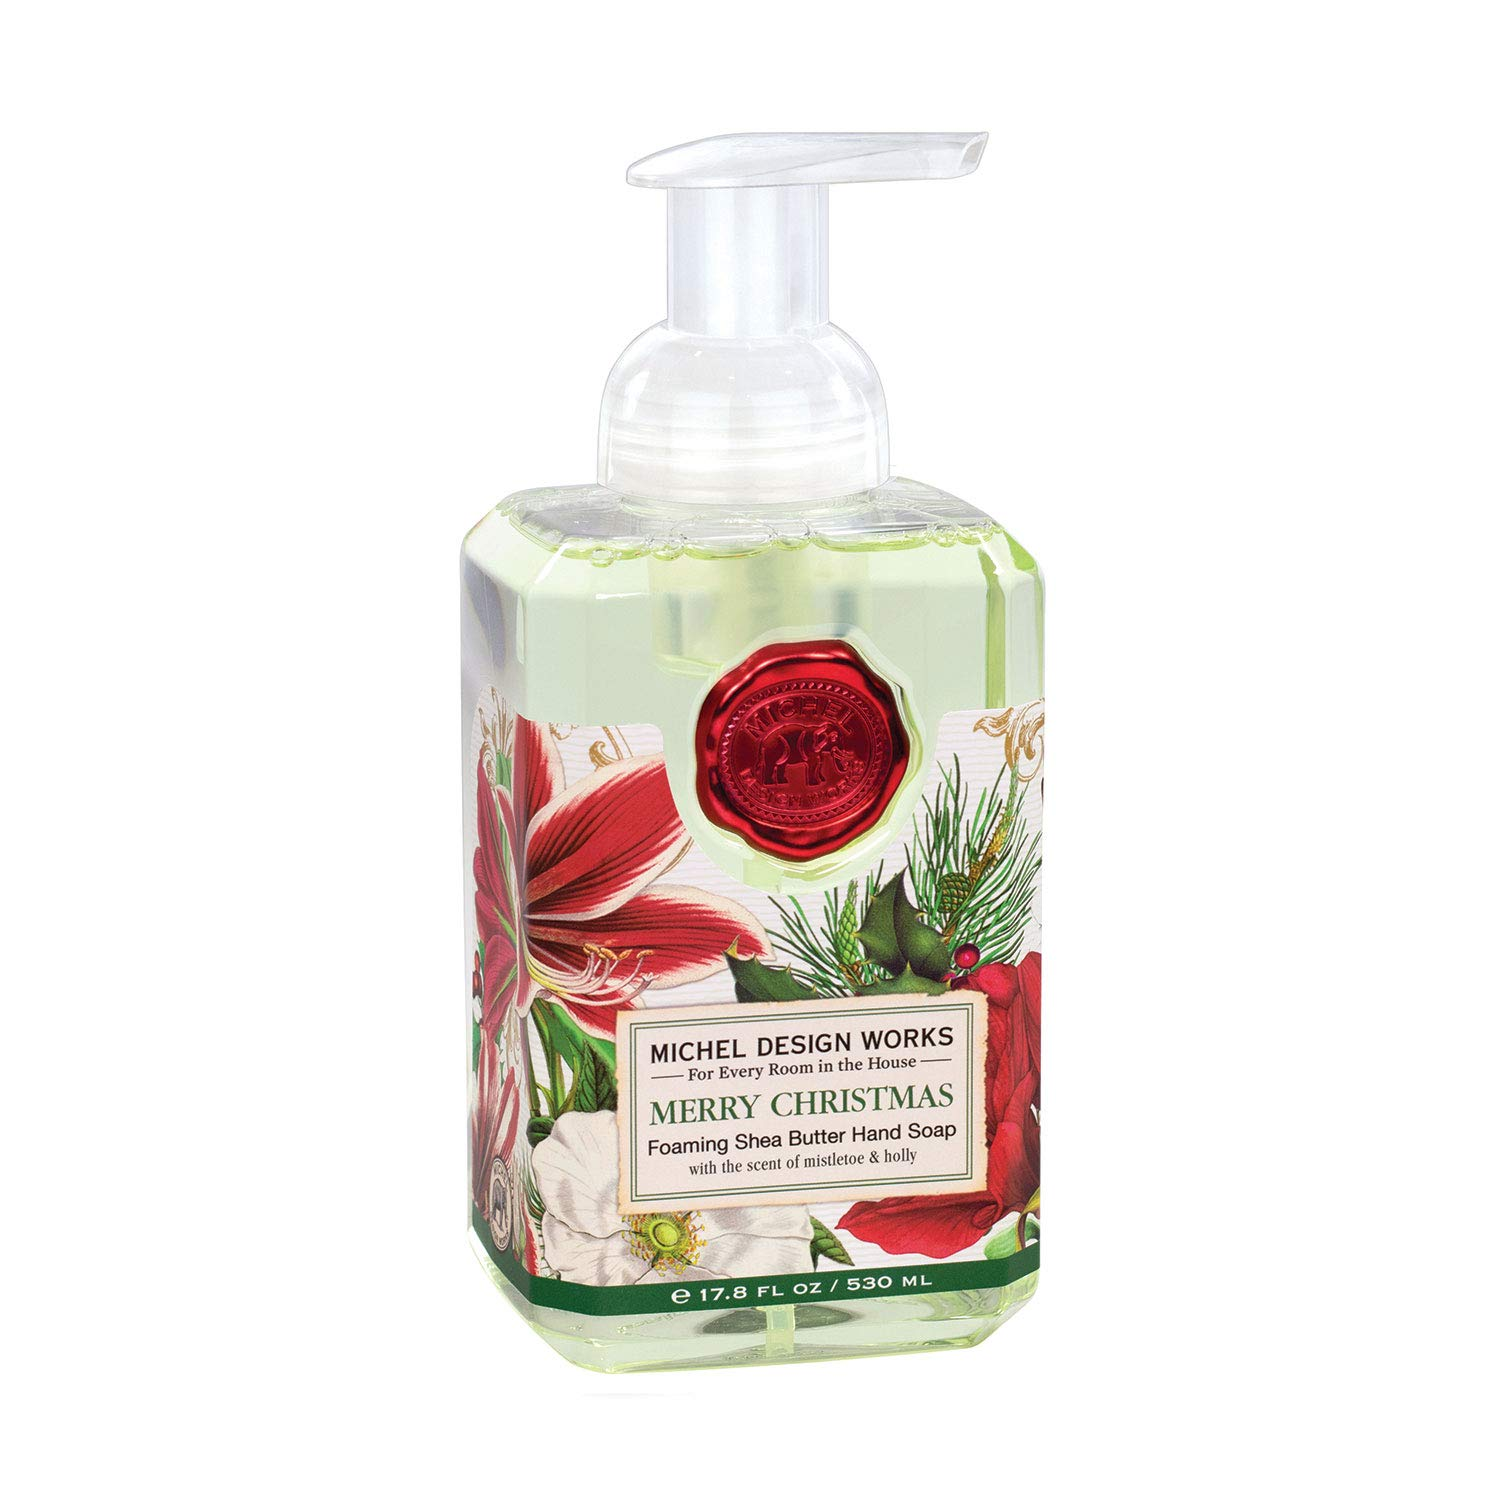 Michel Design Works Foaming Hand Soap, 17.8-Fluid Ounce, Merry Christmas